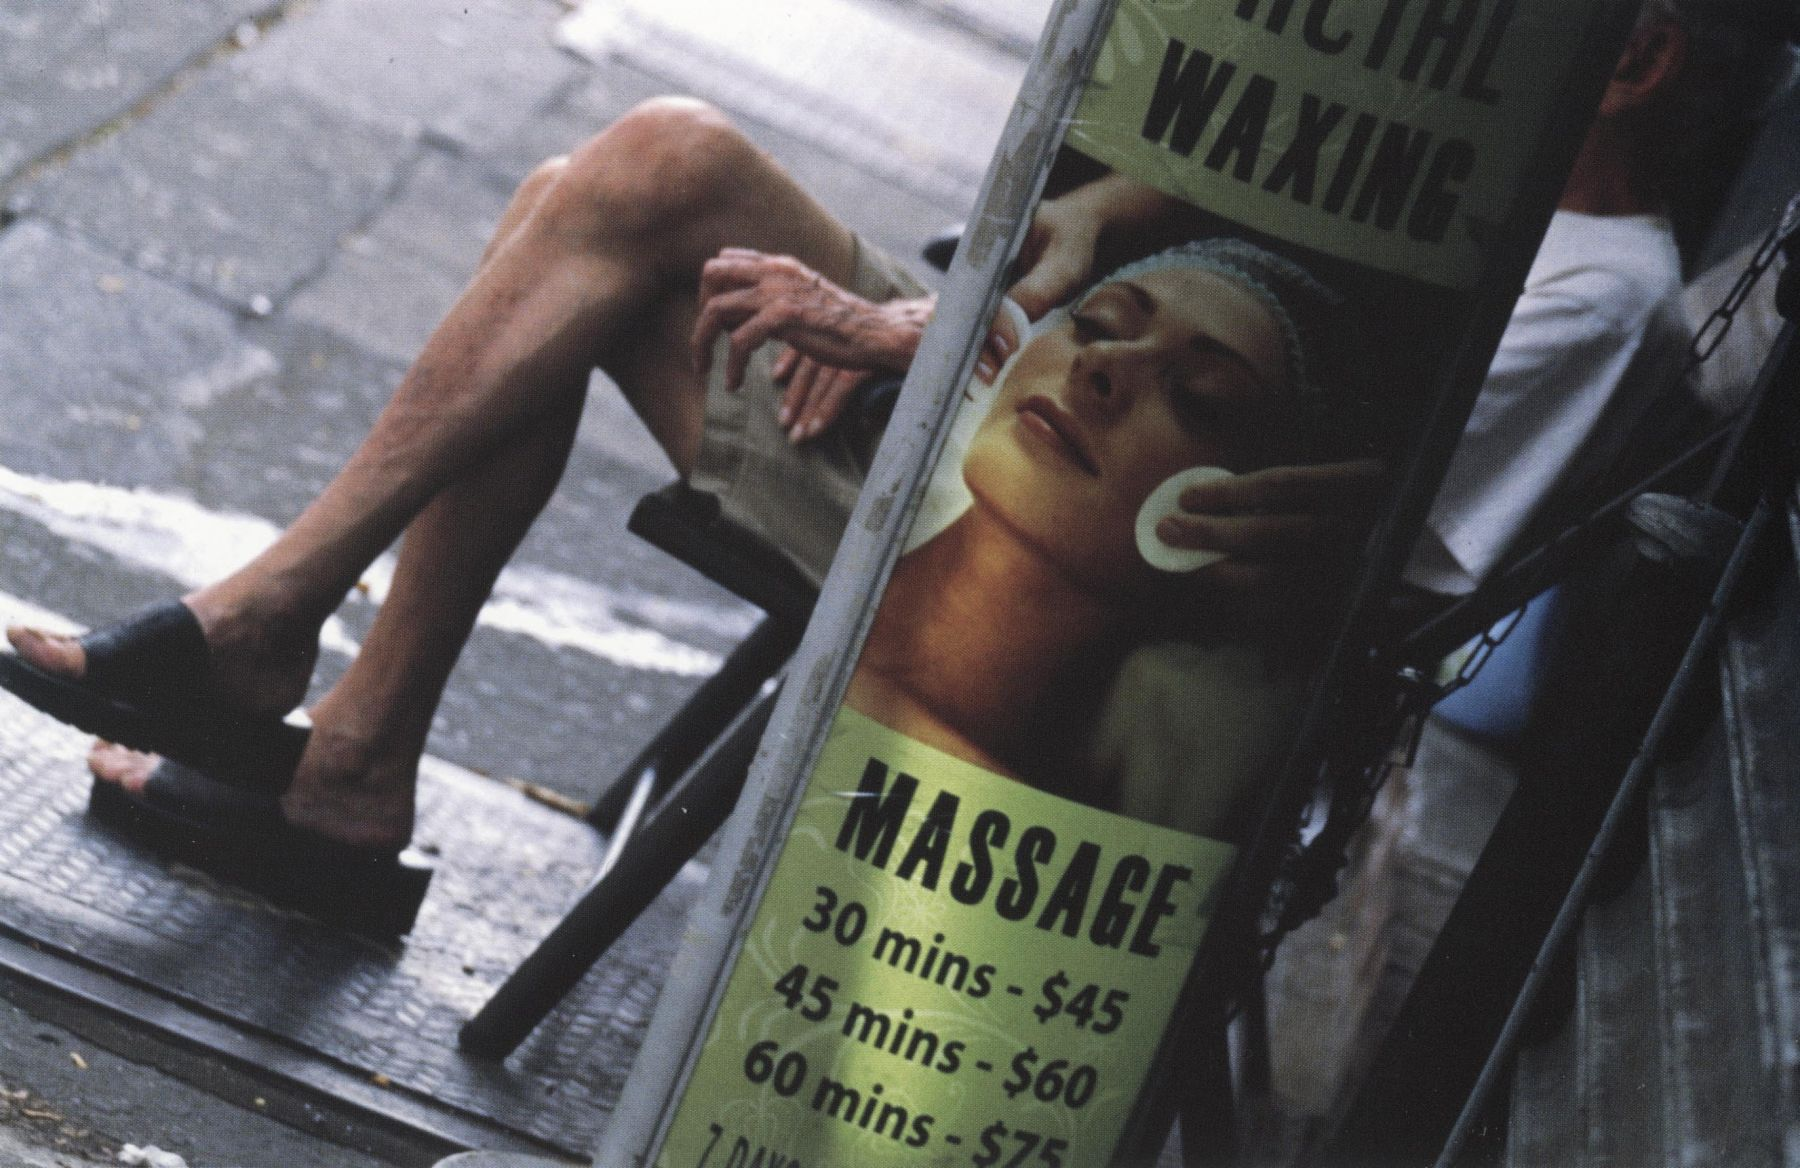 Louis Stettner Massage 9th Avenue, 2011